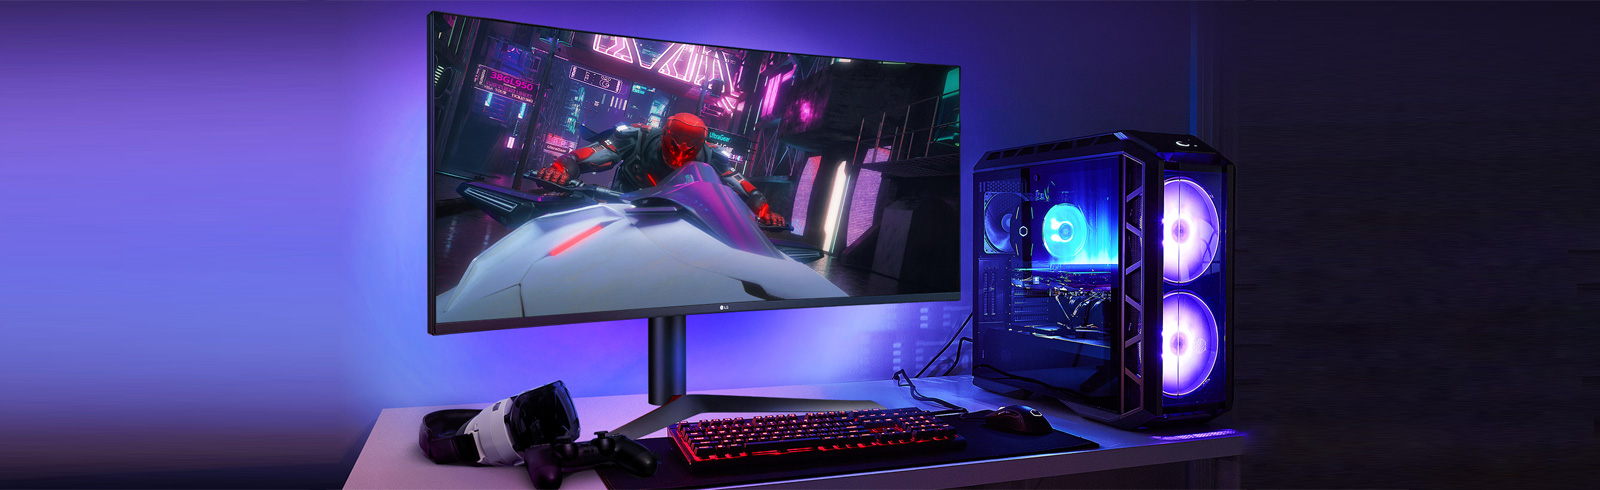 LG will unveil in South Korea the LG UltraGear 38GL950G gaming monitor with G-Sync on November 14